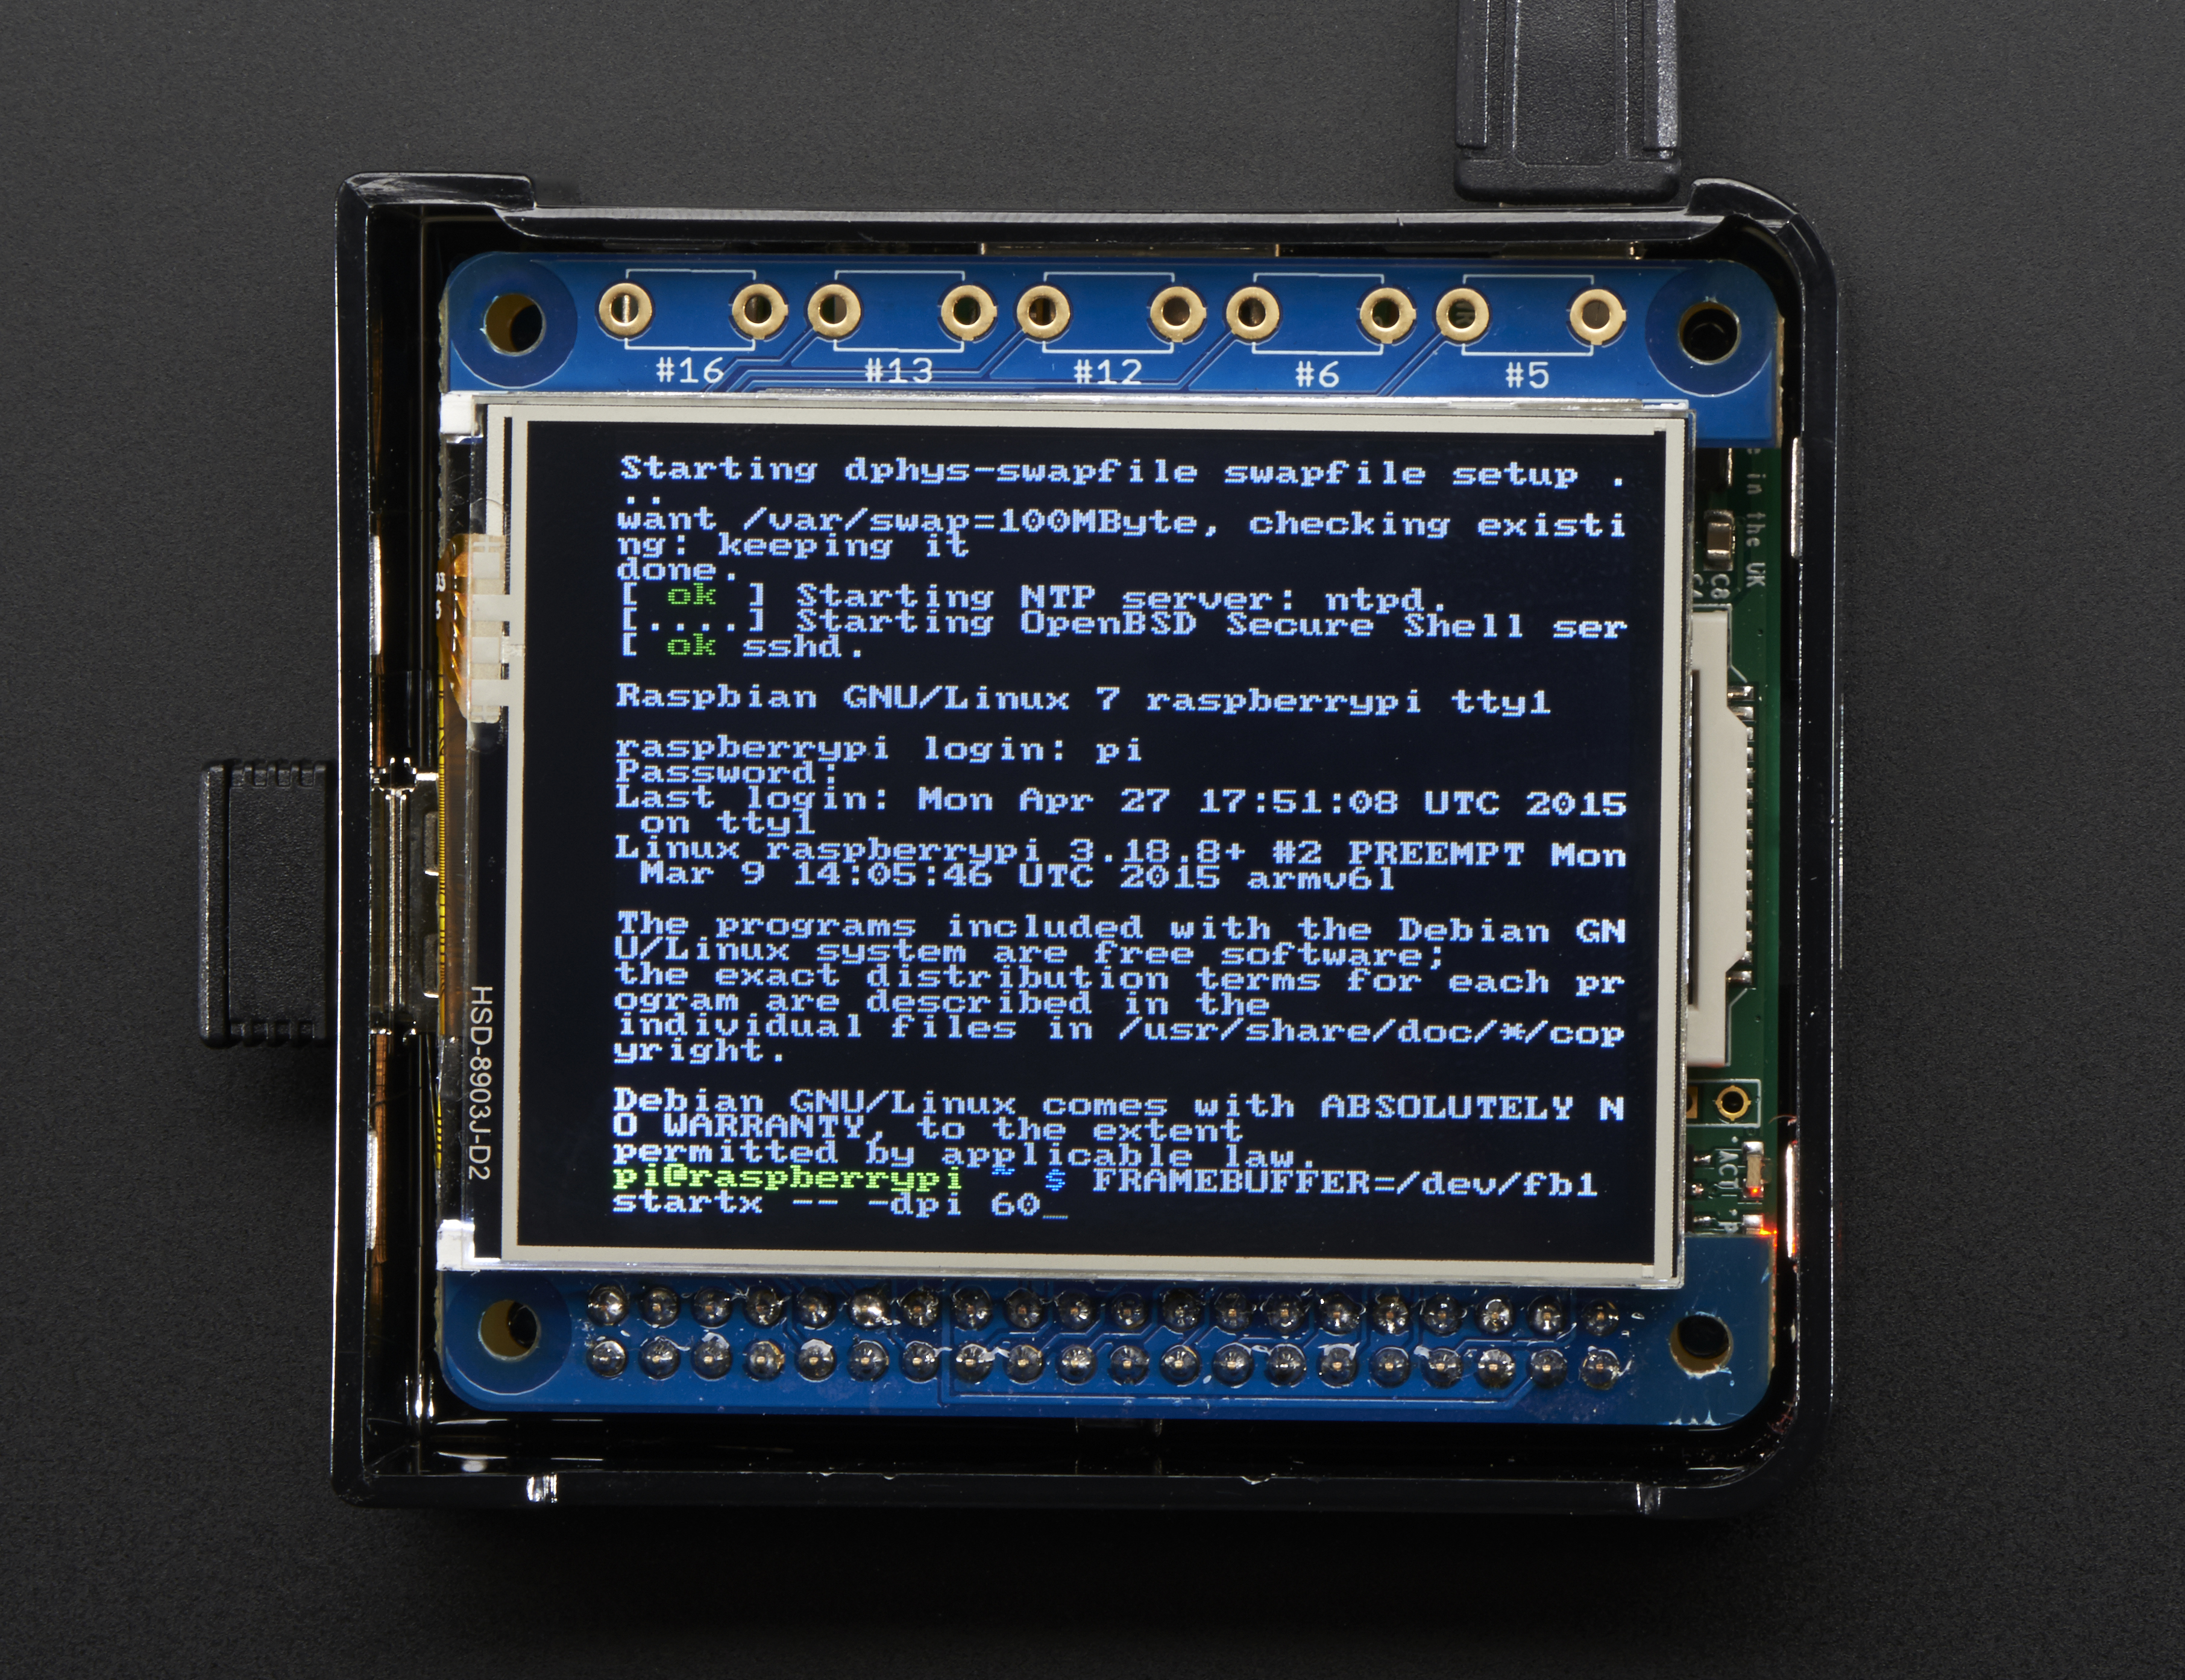 raspberry_pi_2455_top_display_2B_ORIG.jpg